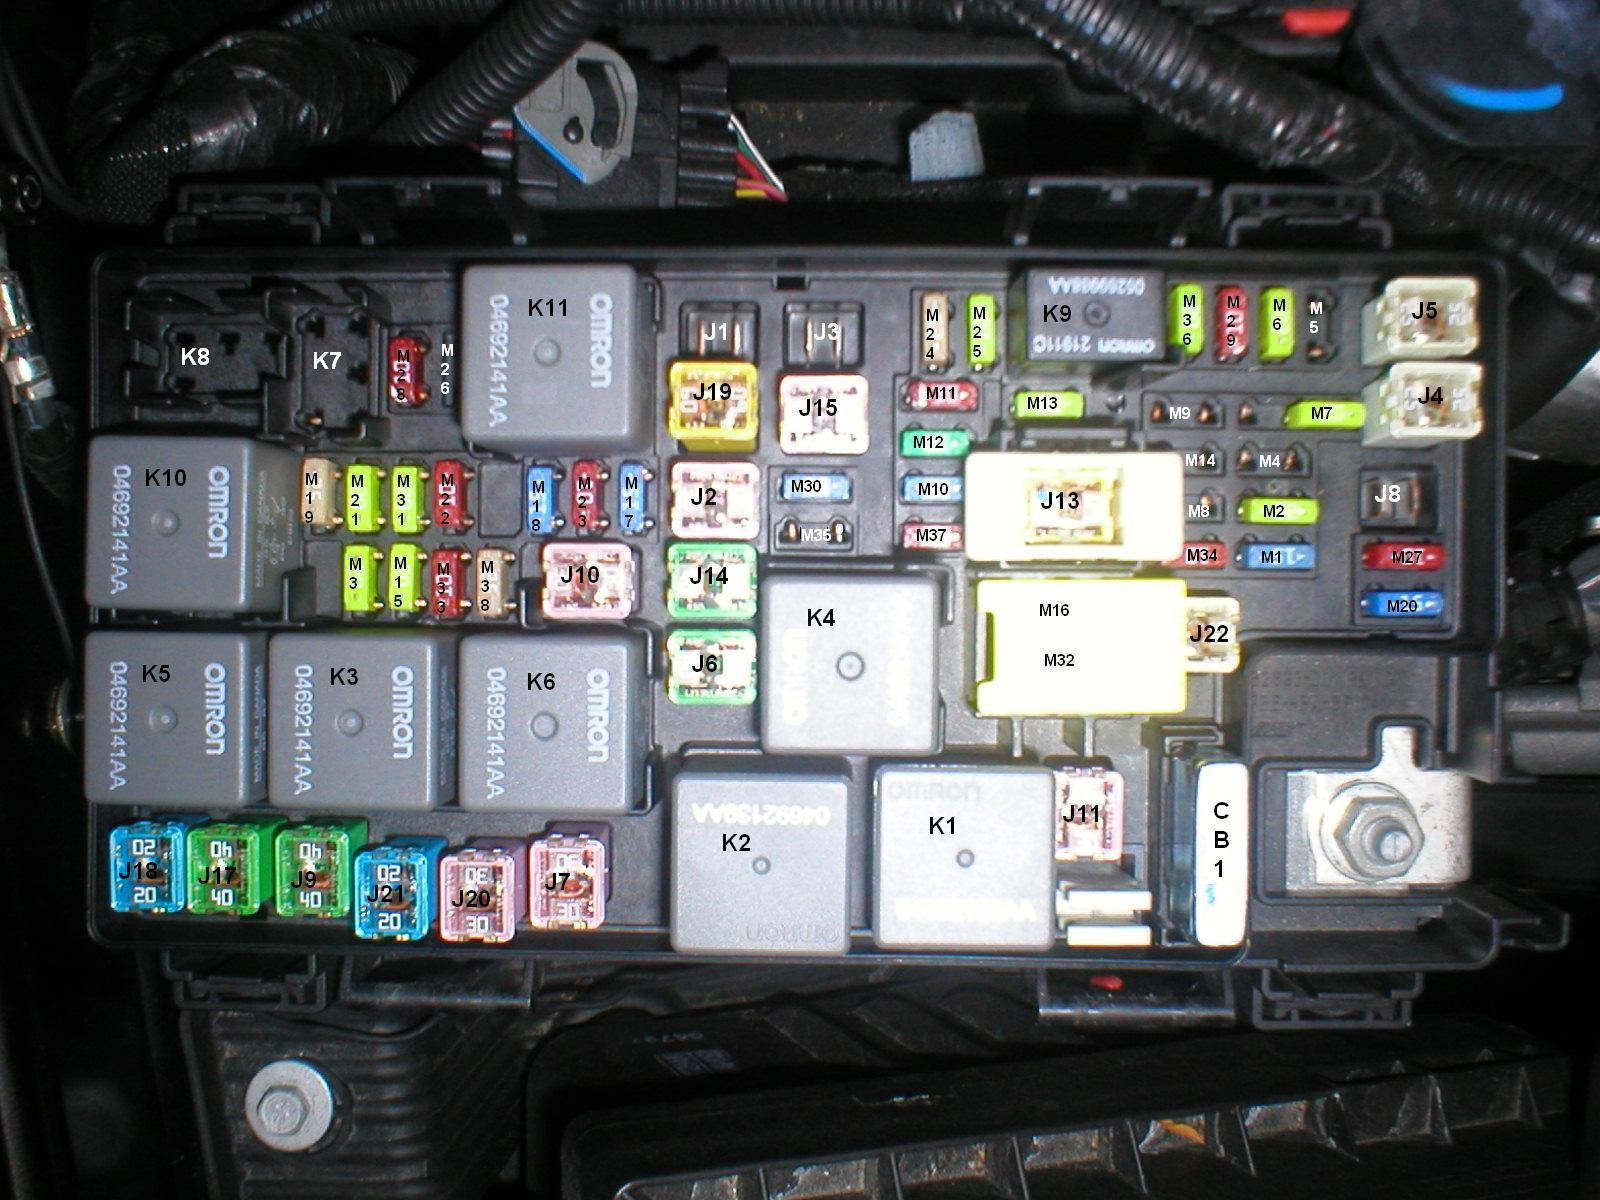 2007 jeep commander fuse box diagram deh p6500 wiring jk map layout jeepforum